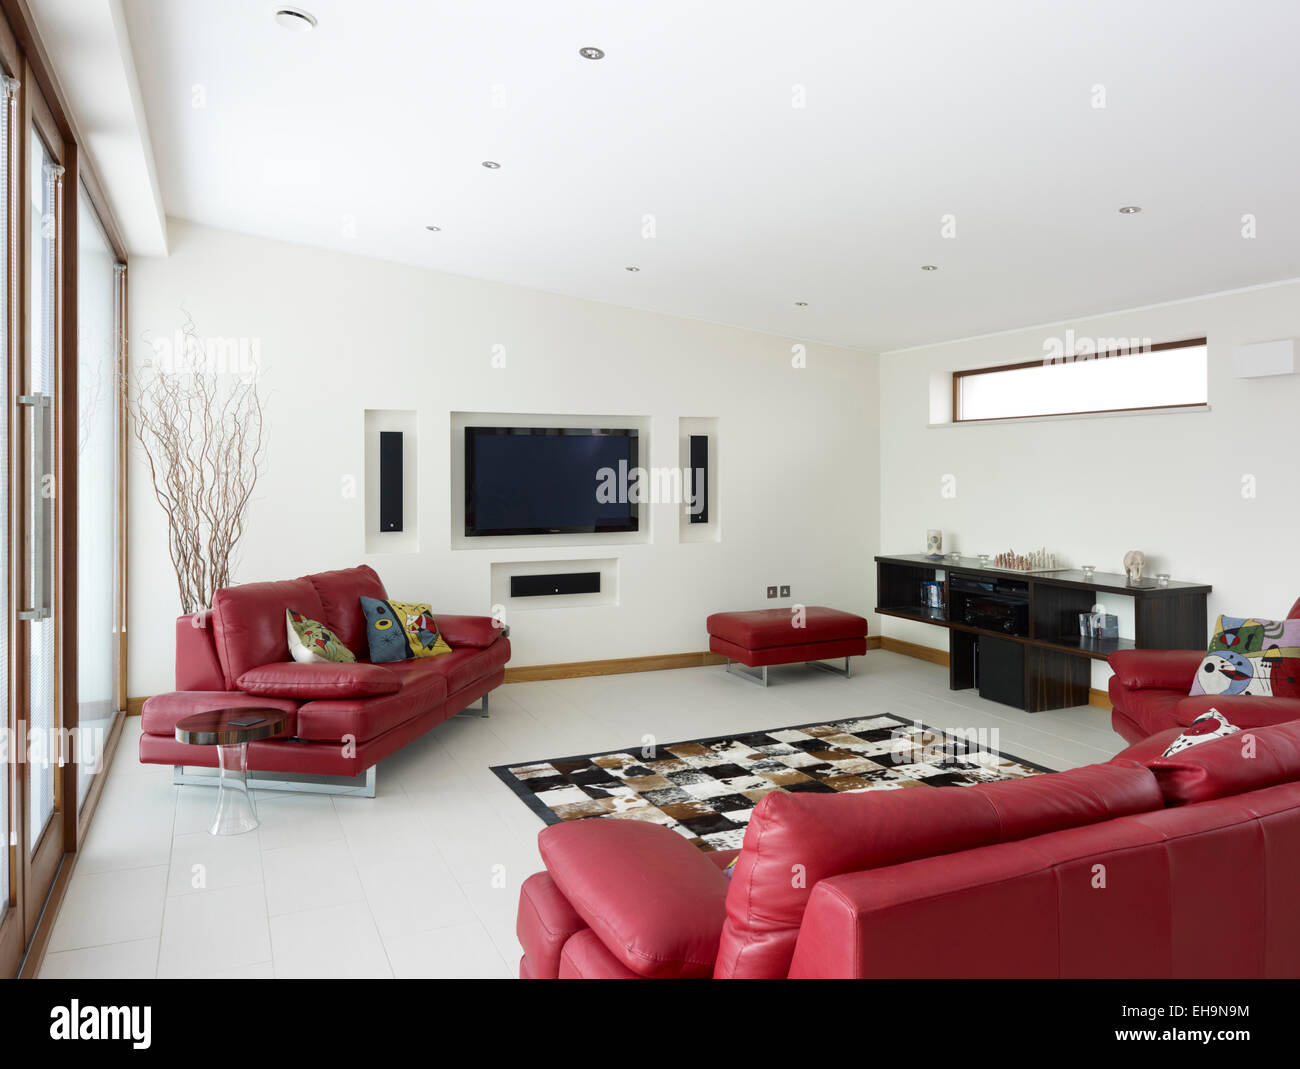 Modern Living Room With Red Leather Sofas And Built In Plasma TV And  Speakers In Shirley Drive Home, UK